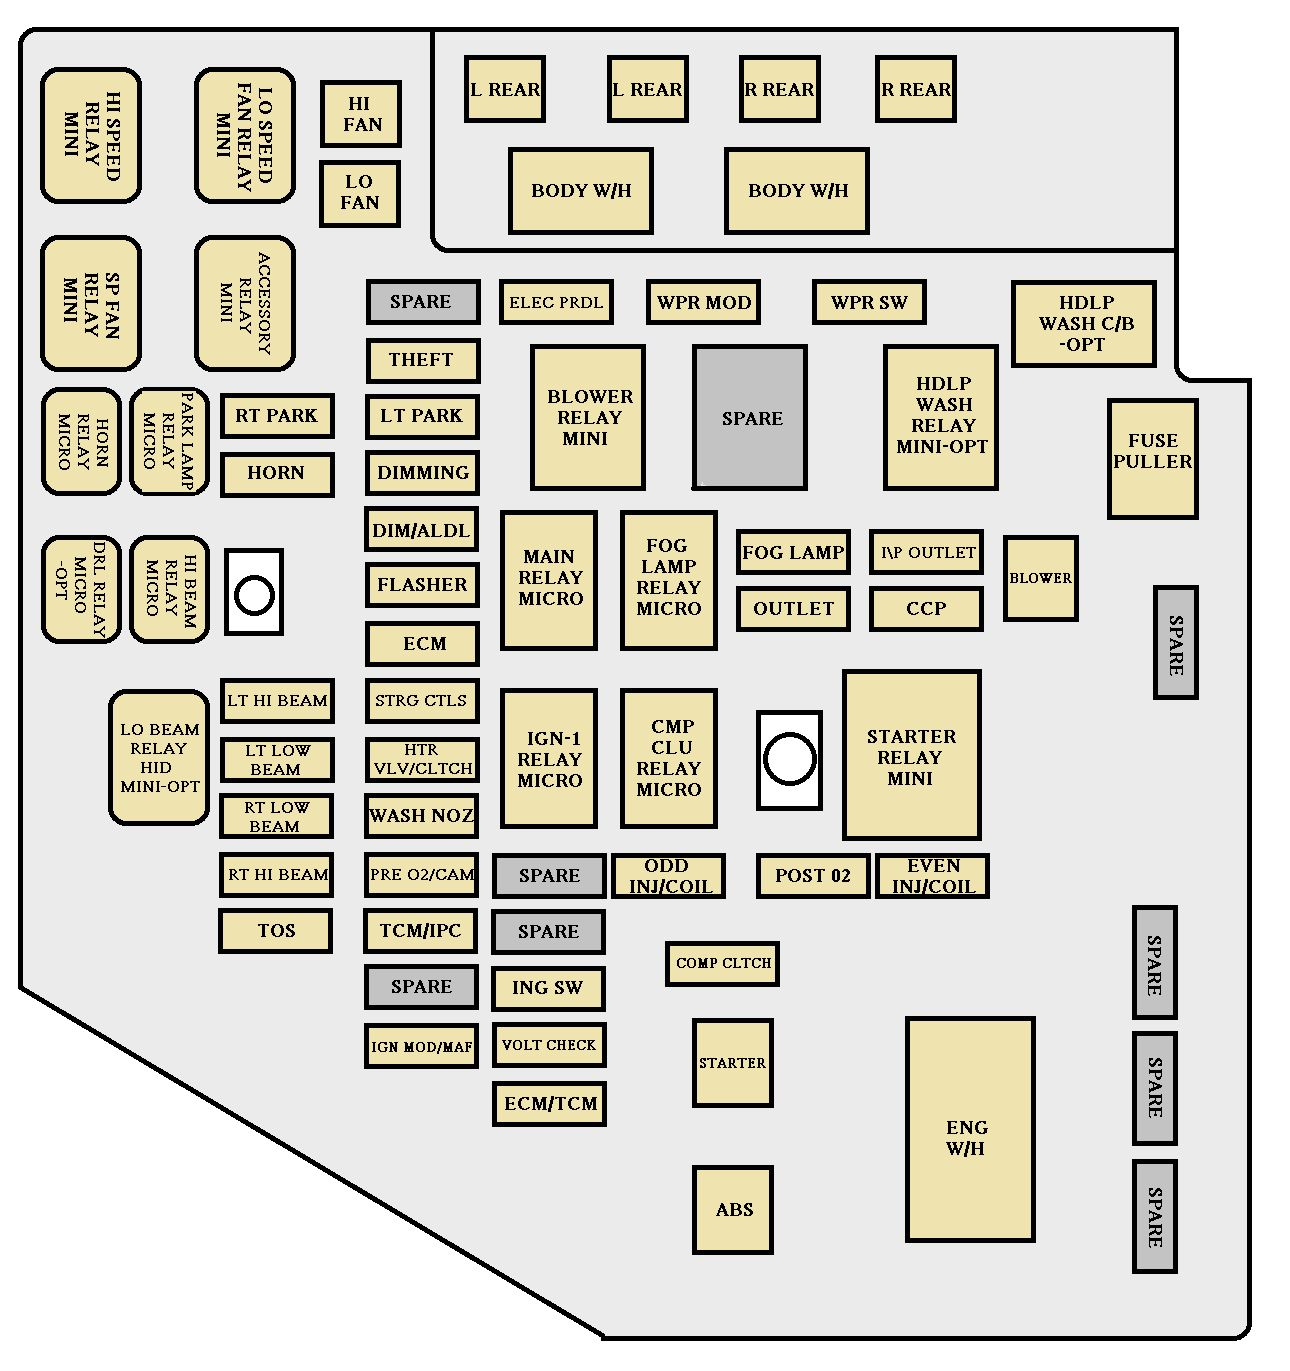 2009 cadillac cts interior fuse box location explained wiring diagrams 1990 buick lesabre engine diagram 2009 [ 1290 x 1371 Pixel ]